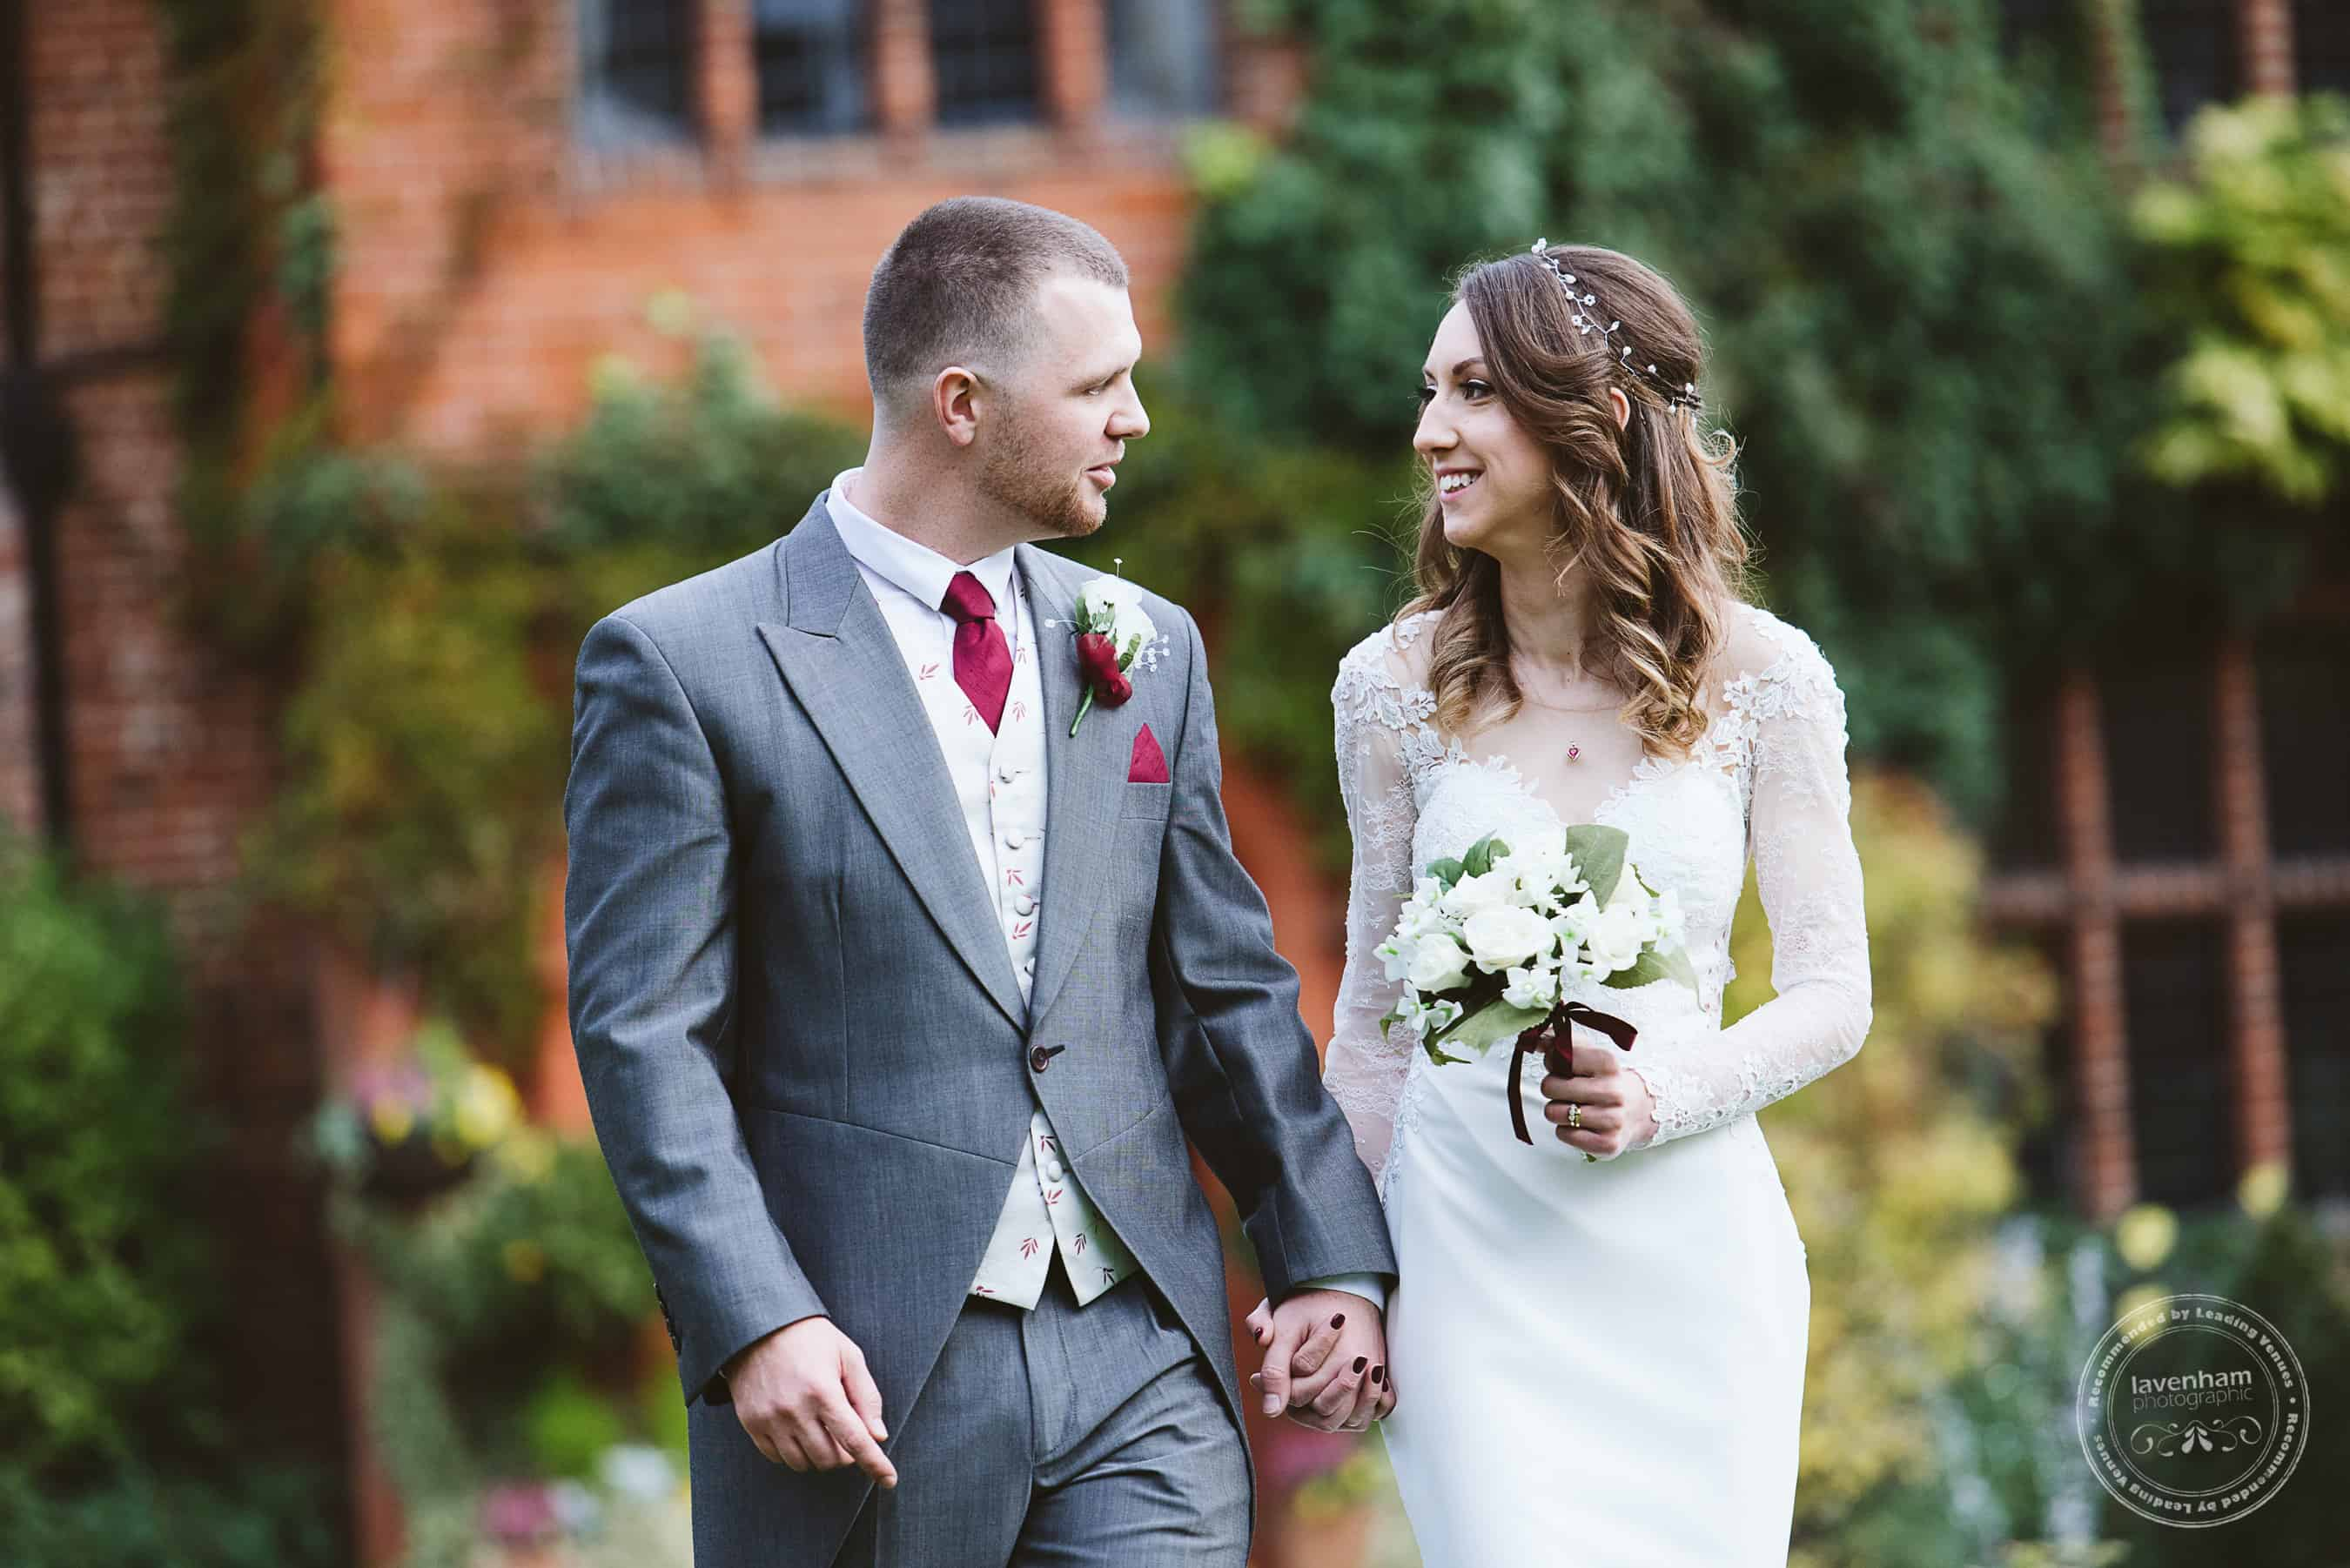 041118 Woodhall Manor Wedding Photography by Lavenham Photographic 078